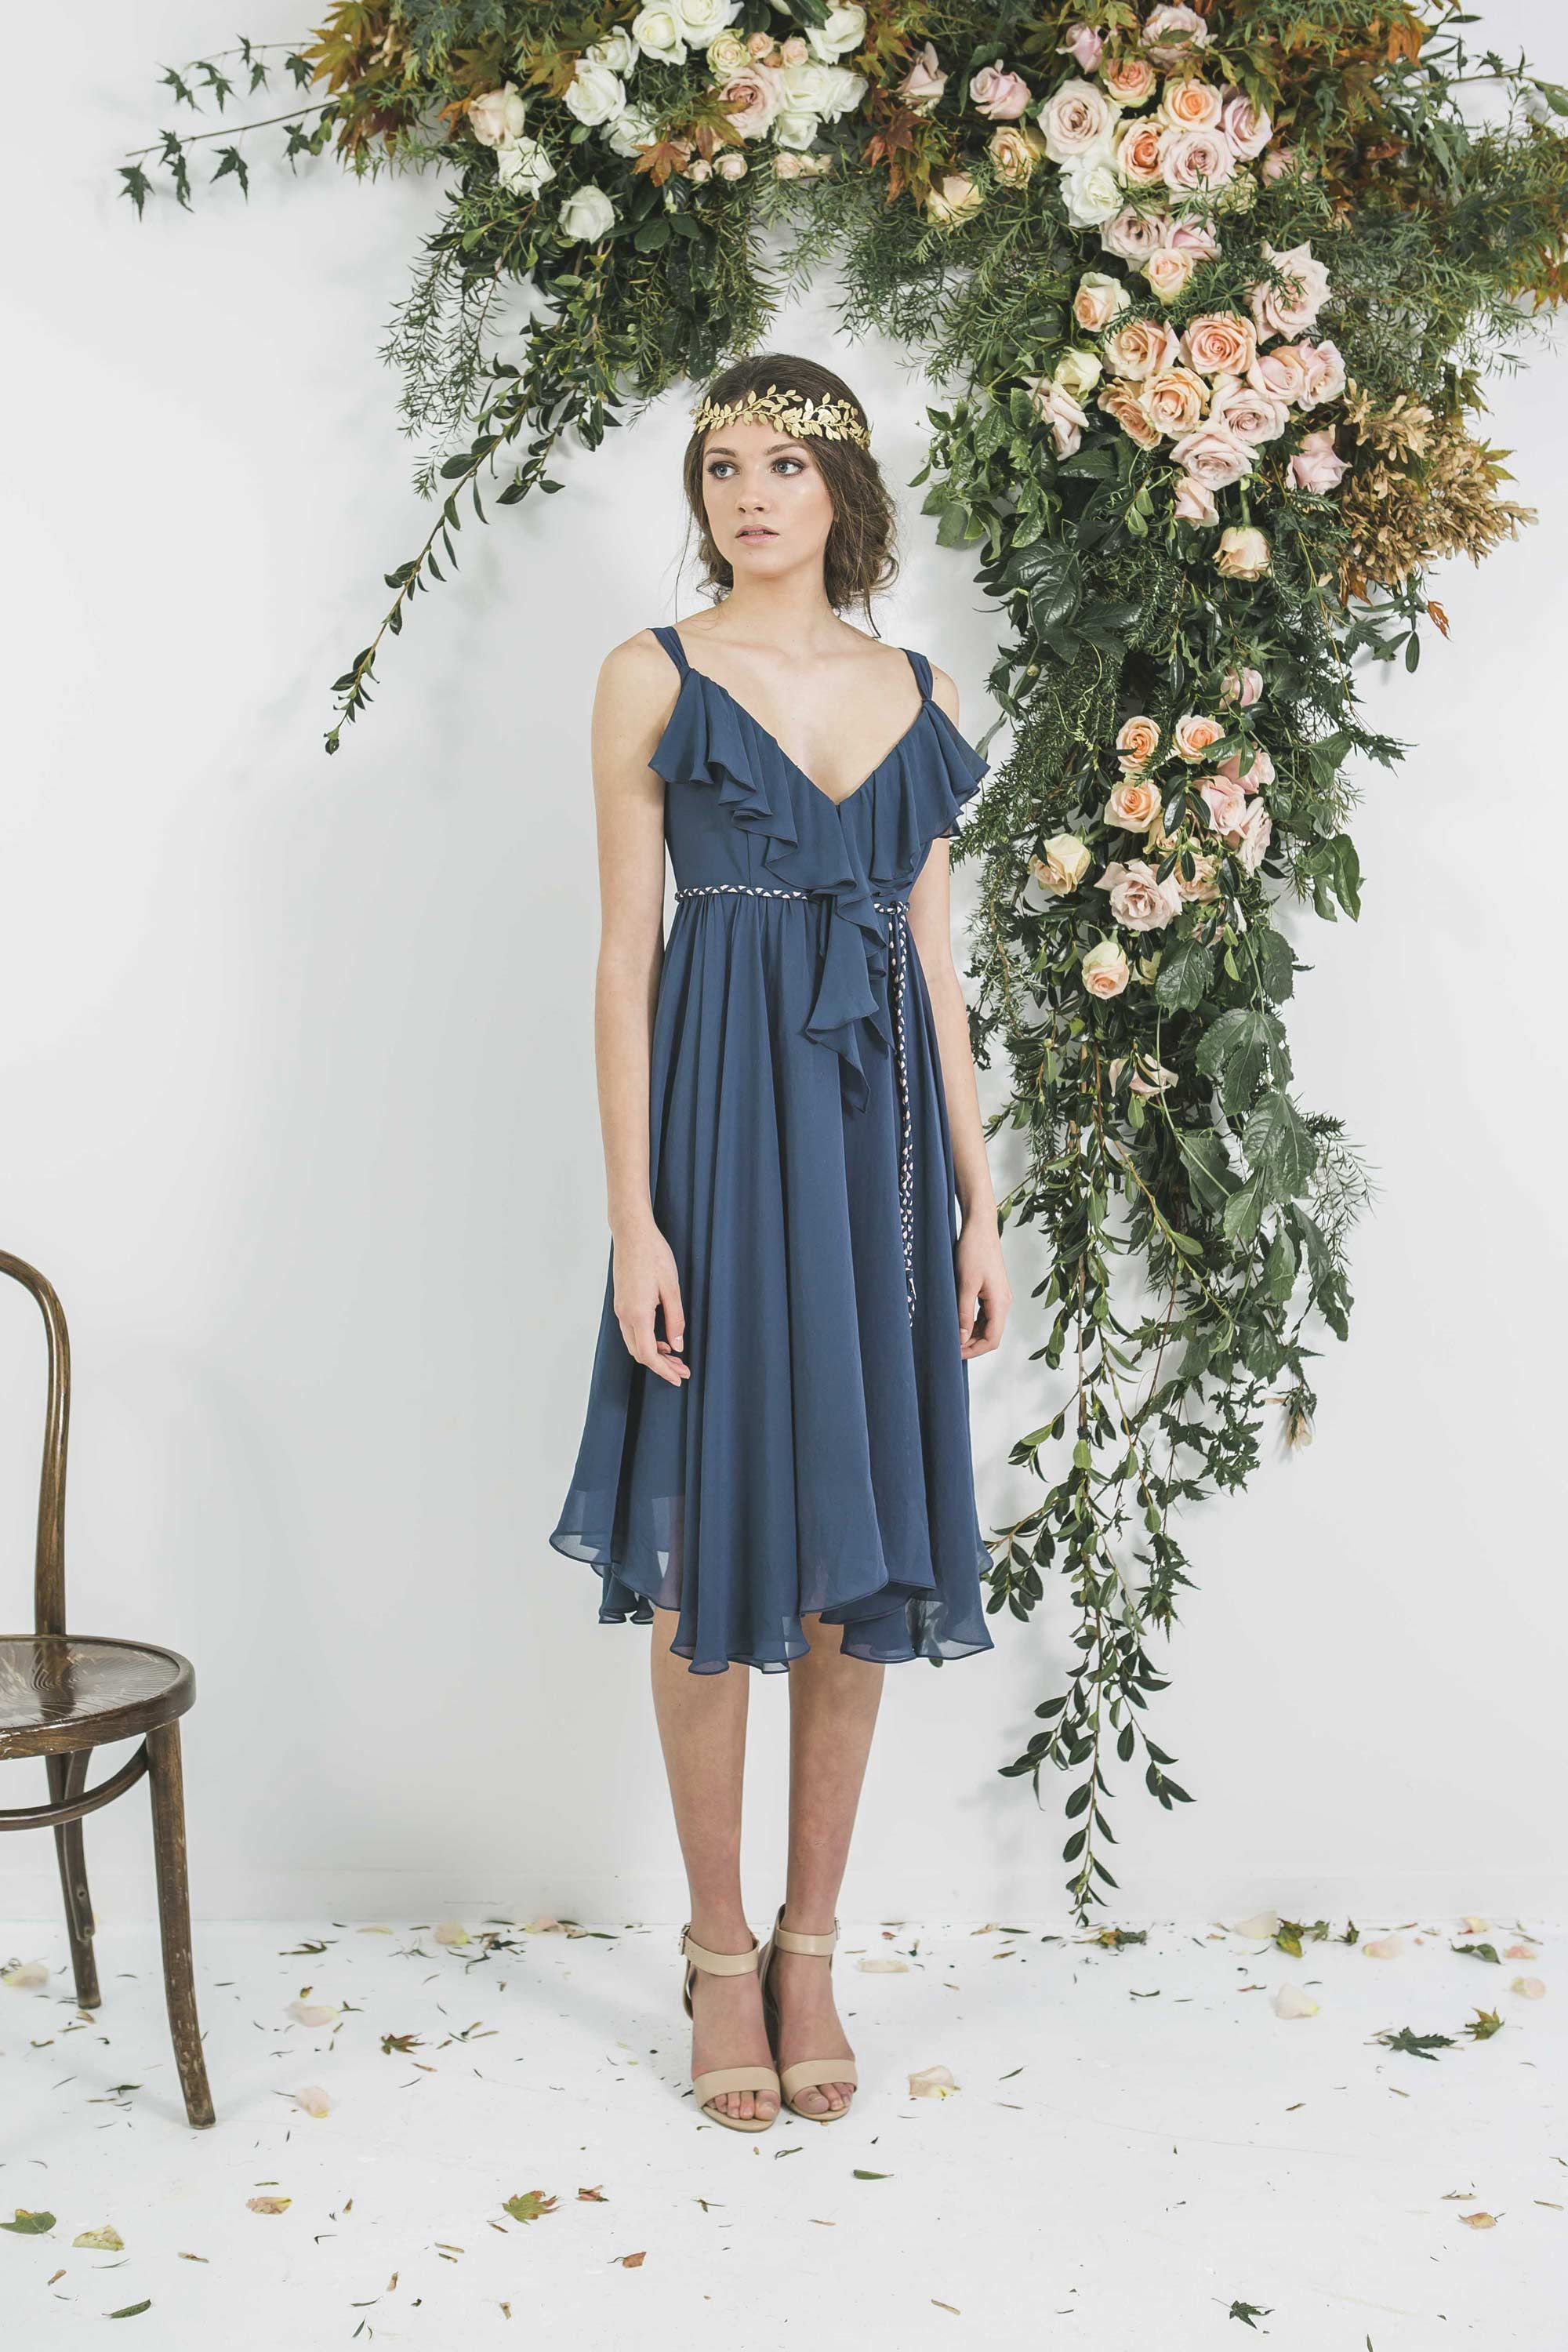 Opulent dreamer bridesmaid collection by victor bridesmaid unique quality bohemian bridesmaid dresses you will wear again made in auckland new zealand ombrellifo Gallery